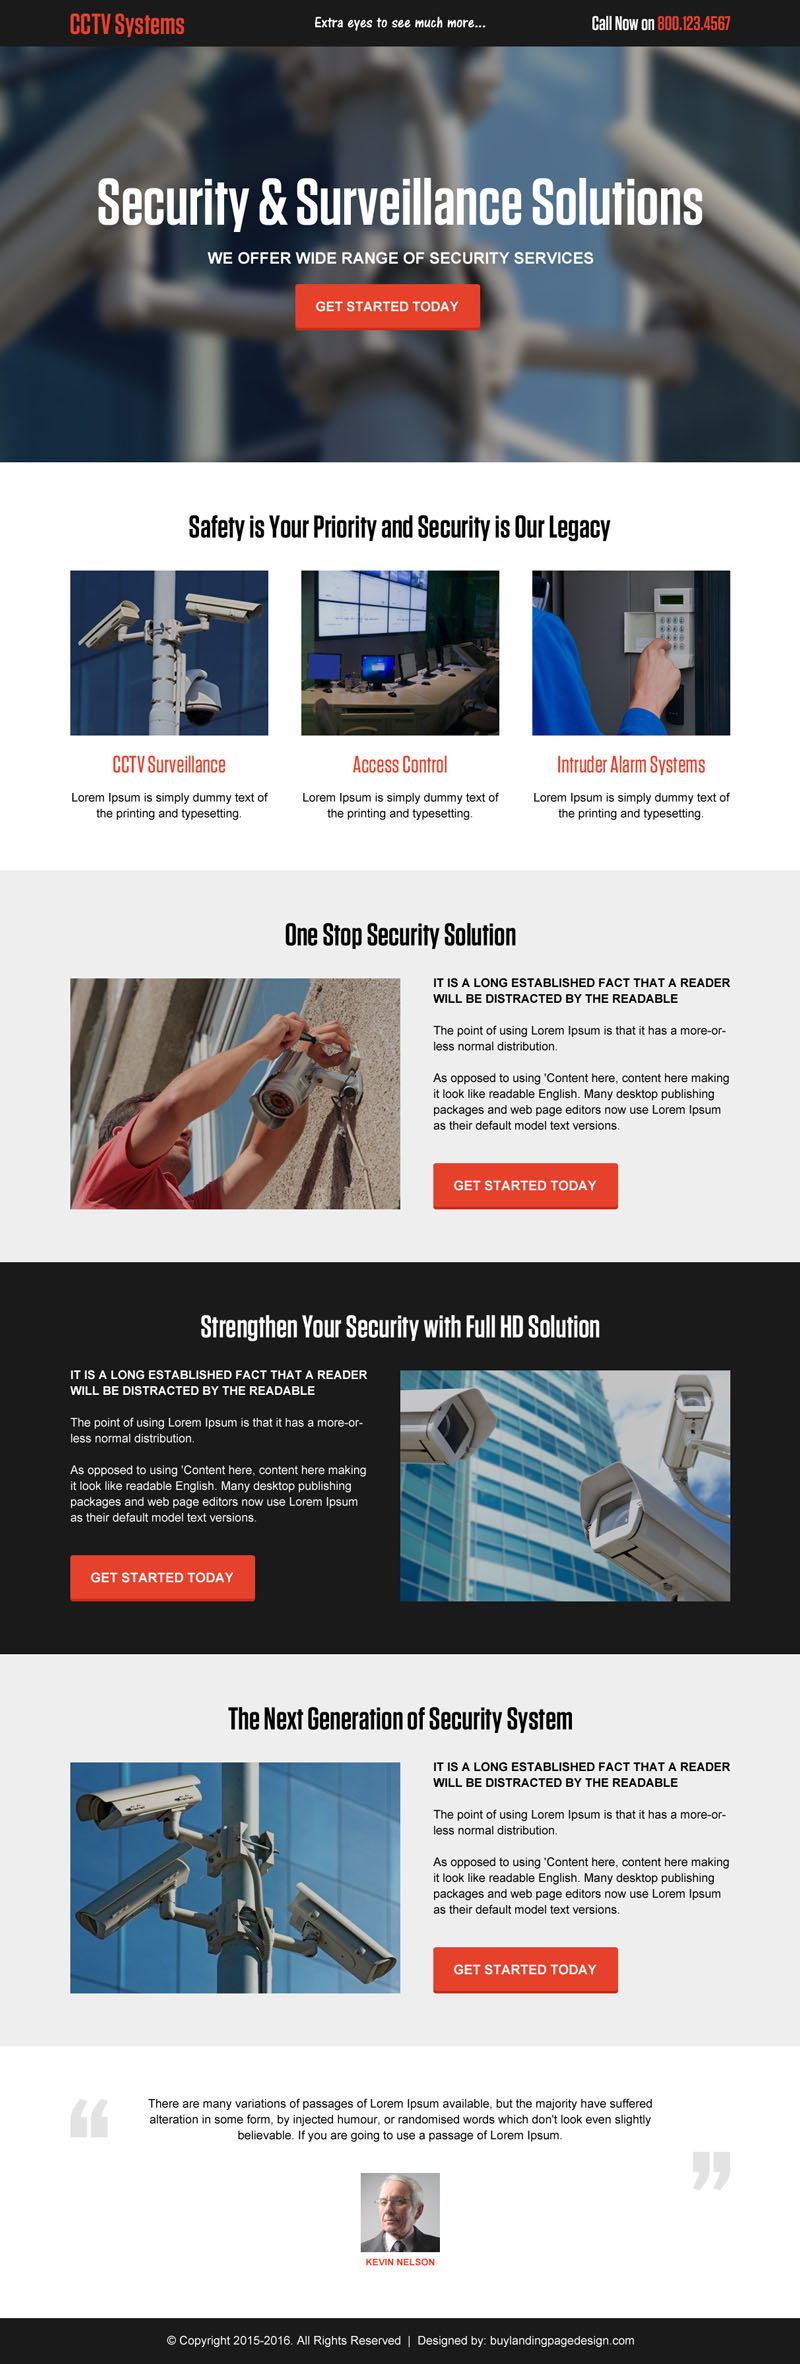 cctv-security-system-and-surveillance-solutions-cta-landing-page-design-005